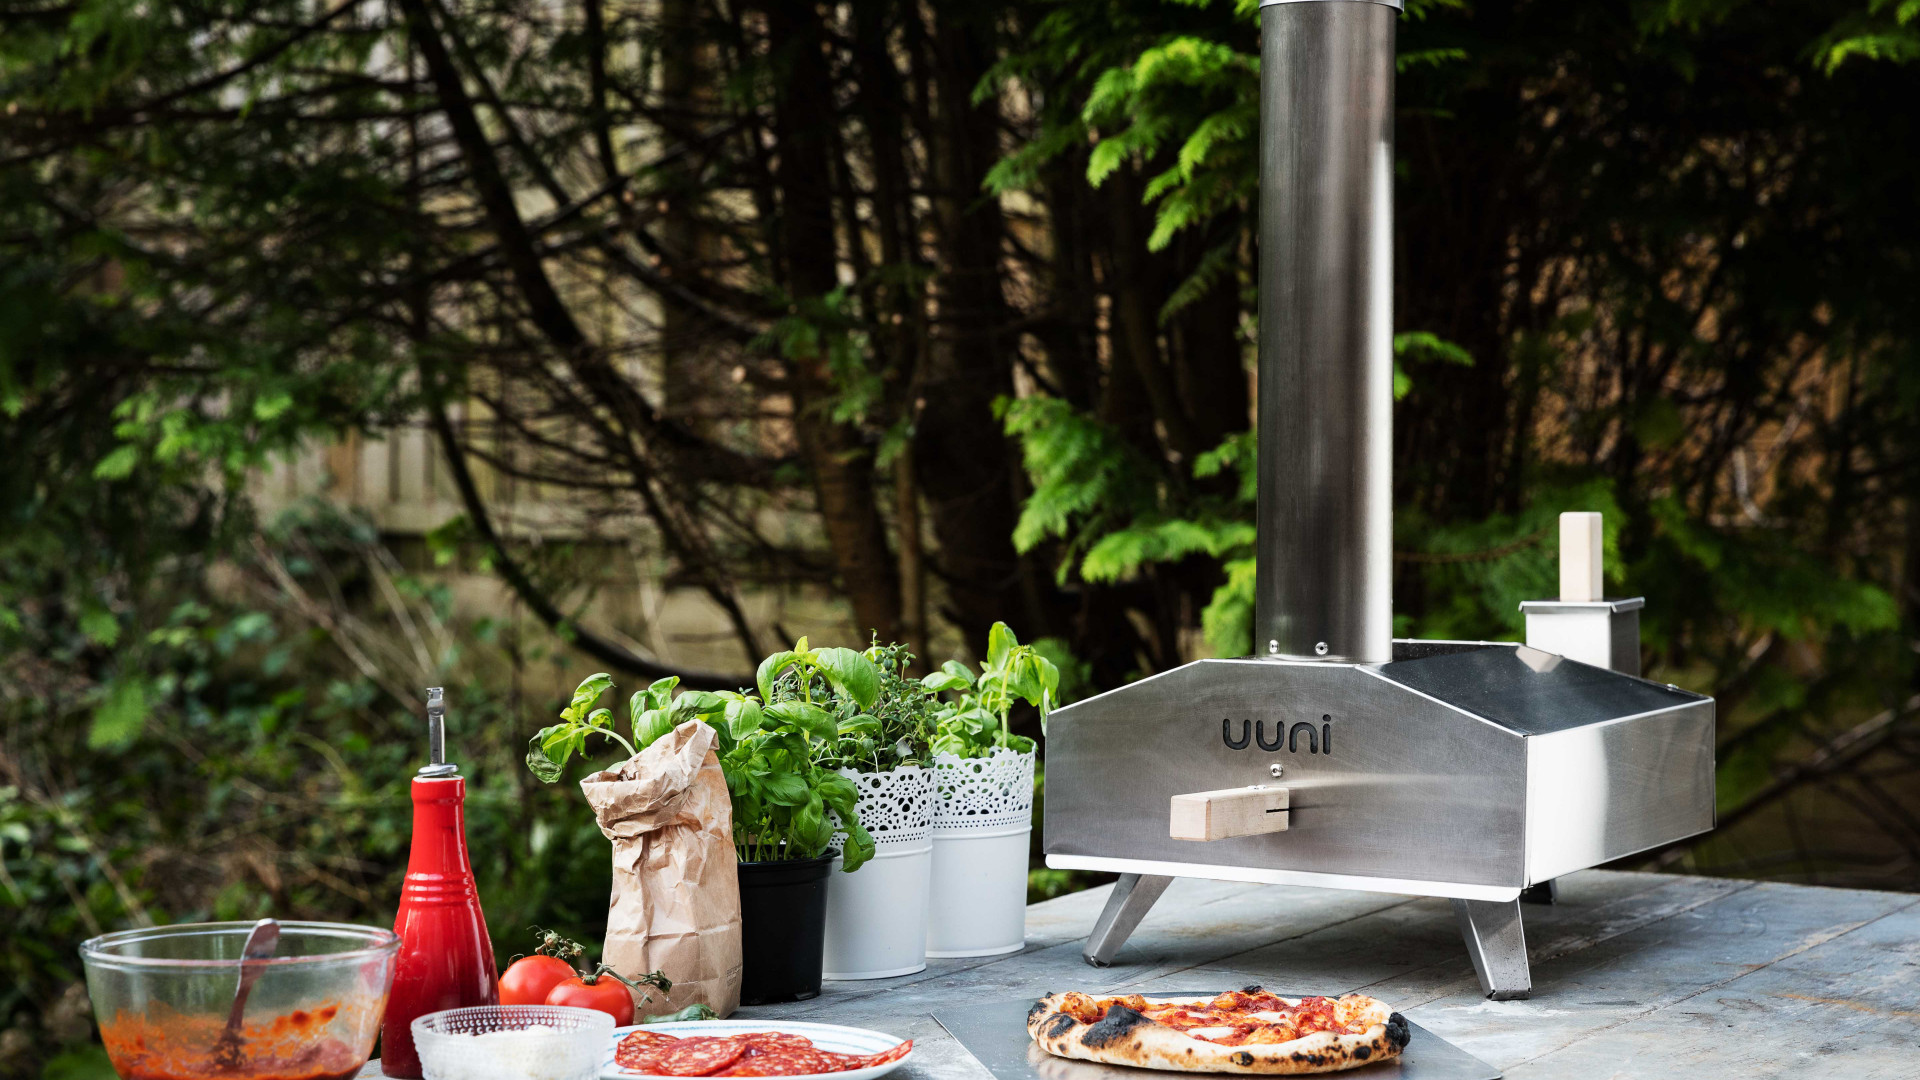 Ooni 3 wood fired oven